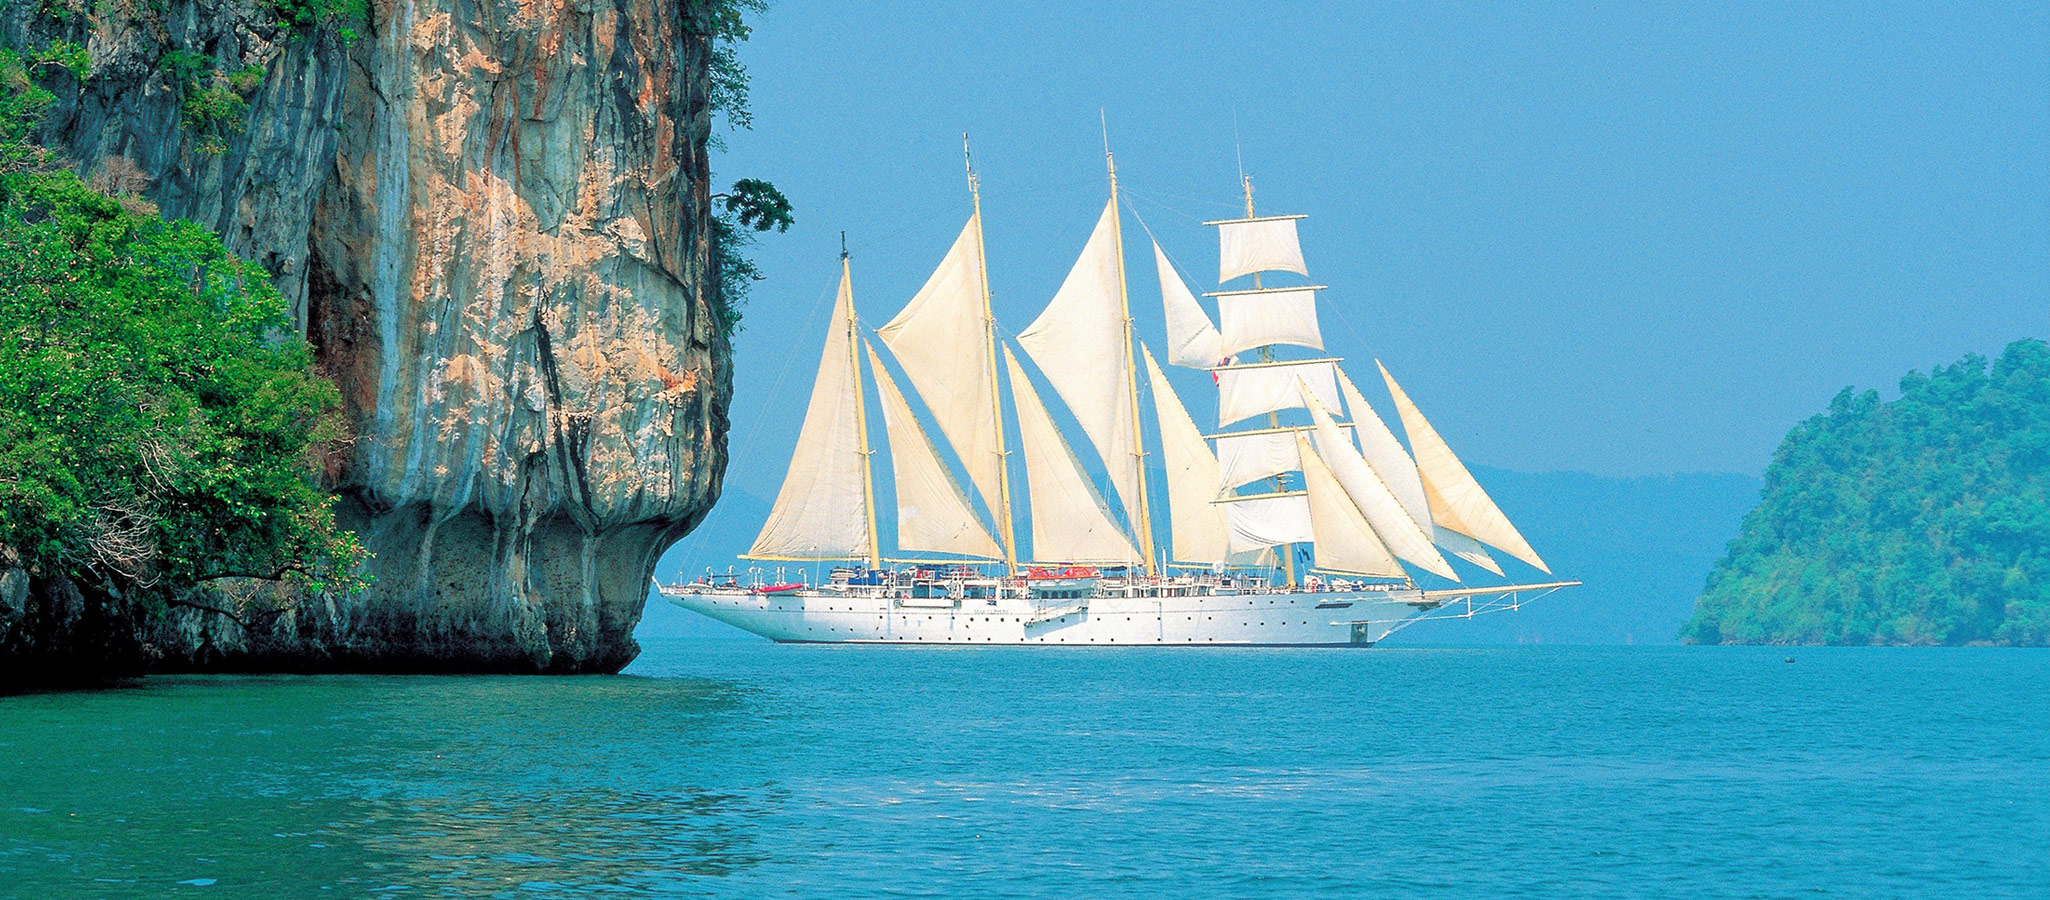 This category also includes some tall ships. From their romantic look and perfect sailing properties, they are just made for maritime incentives and conventions.